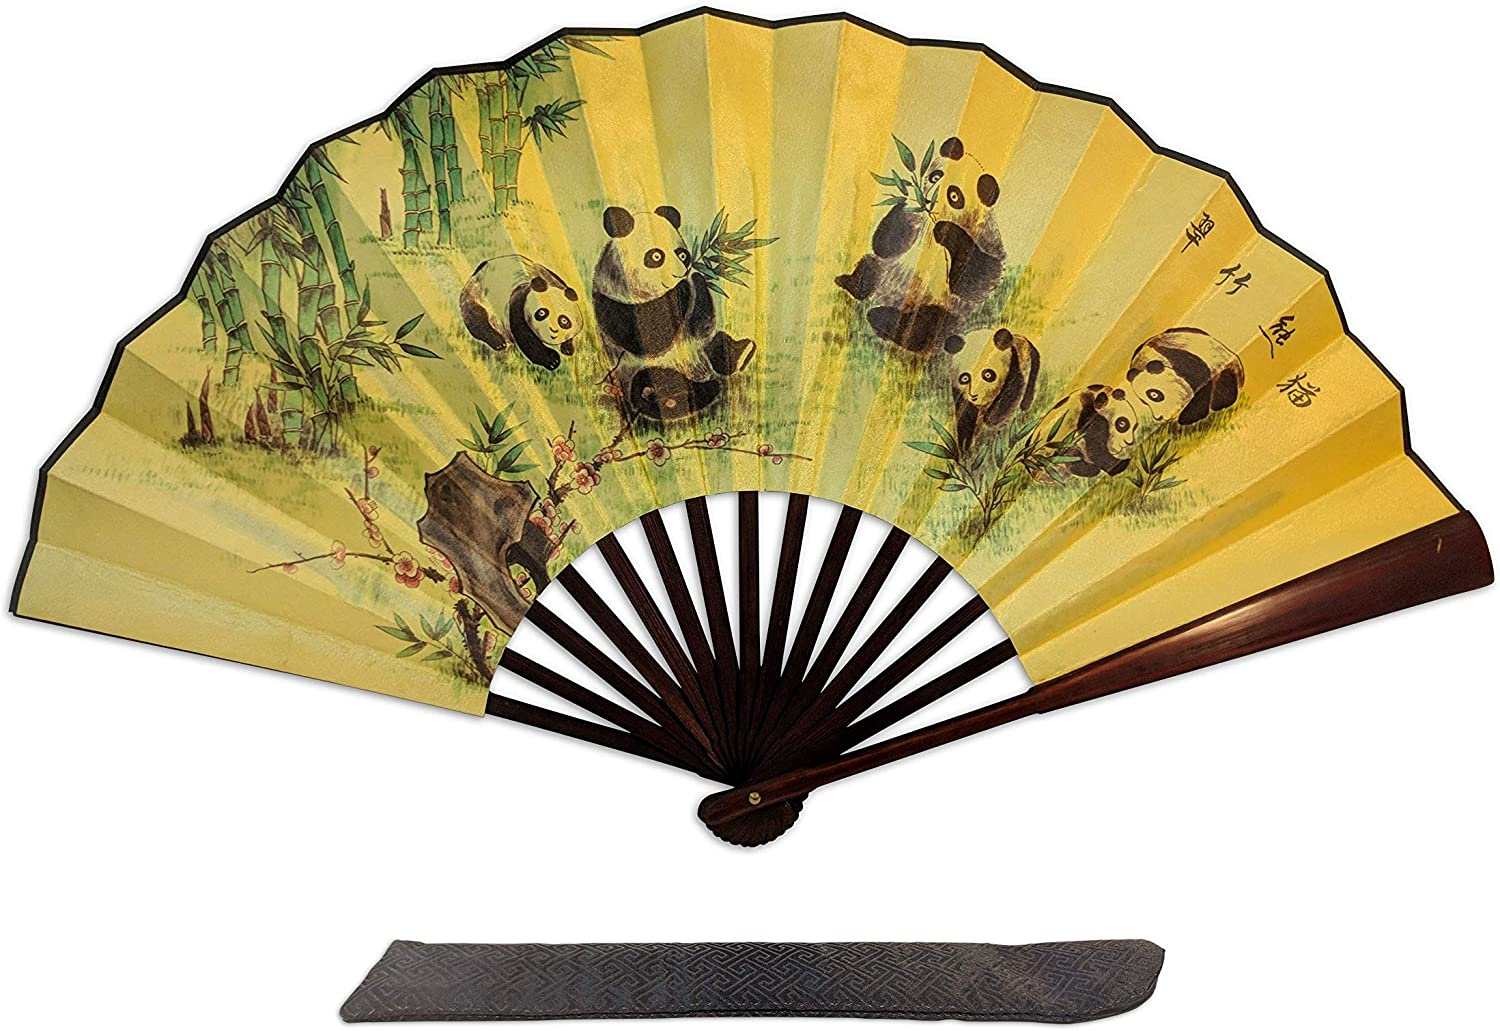 C&K Solutions Folding Hand Fan Chinese Gifts- Panda Large Premium Quality Handheld Japanese Fans for Men and Women